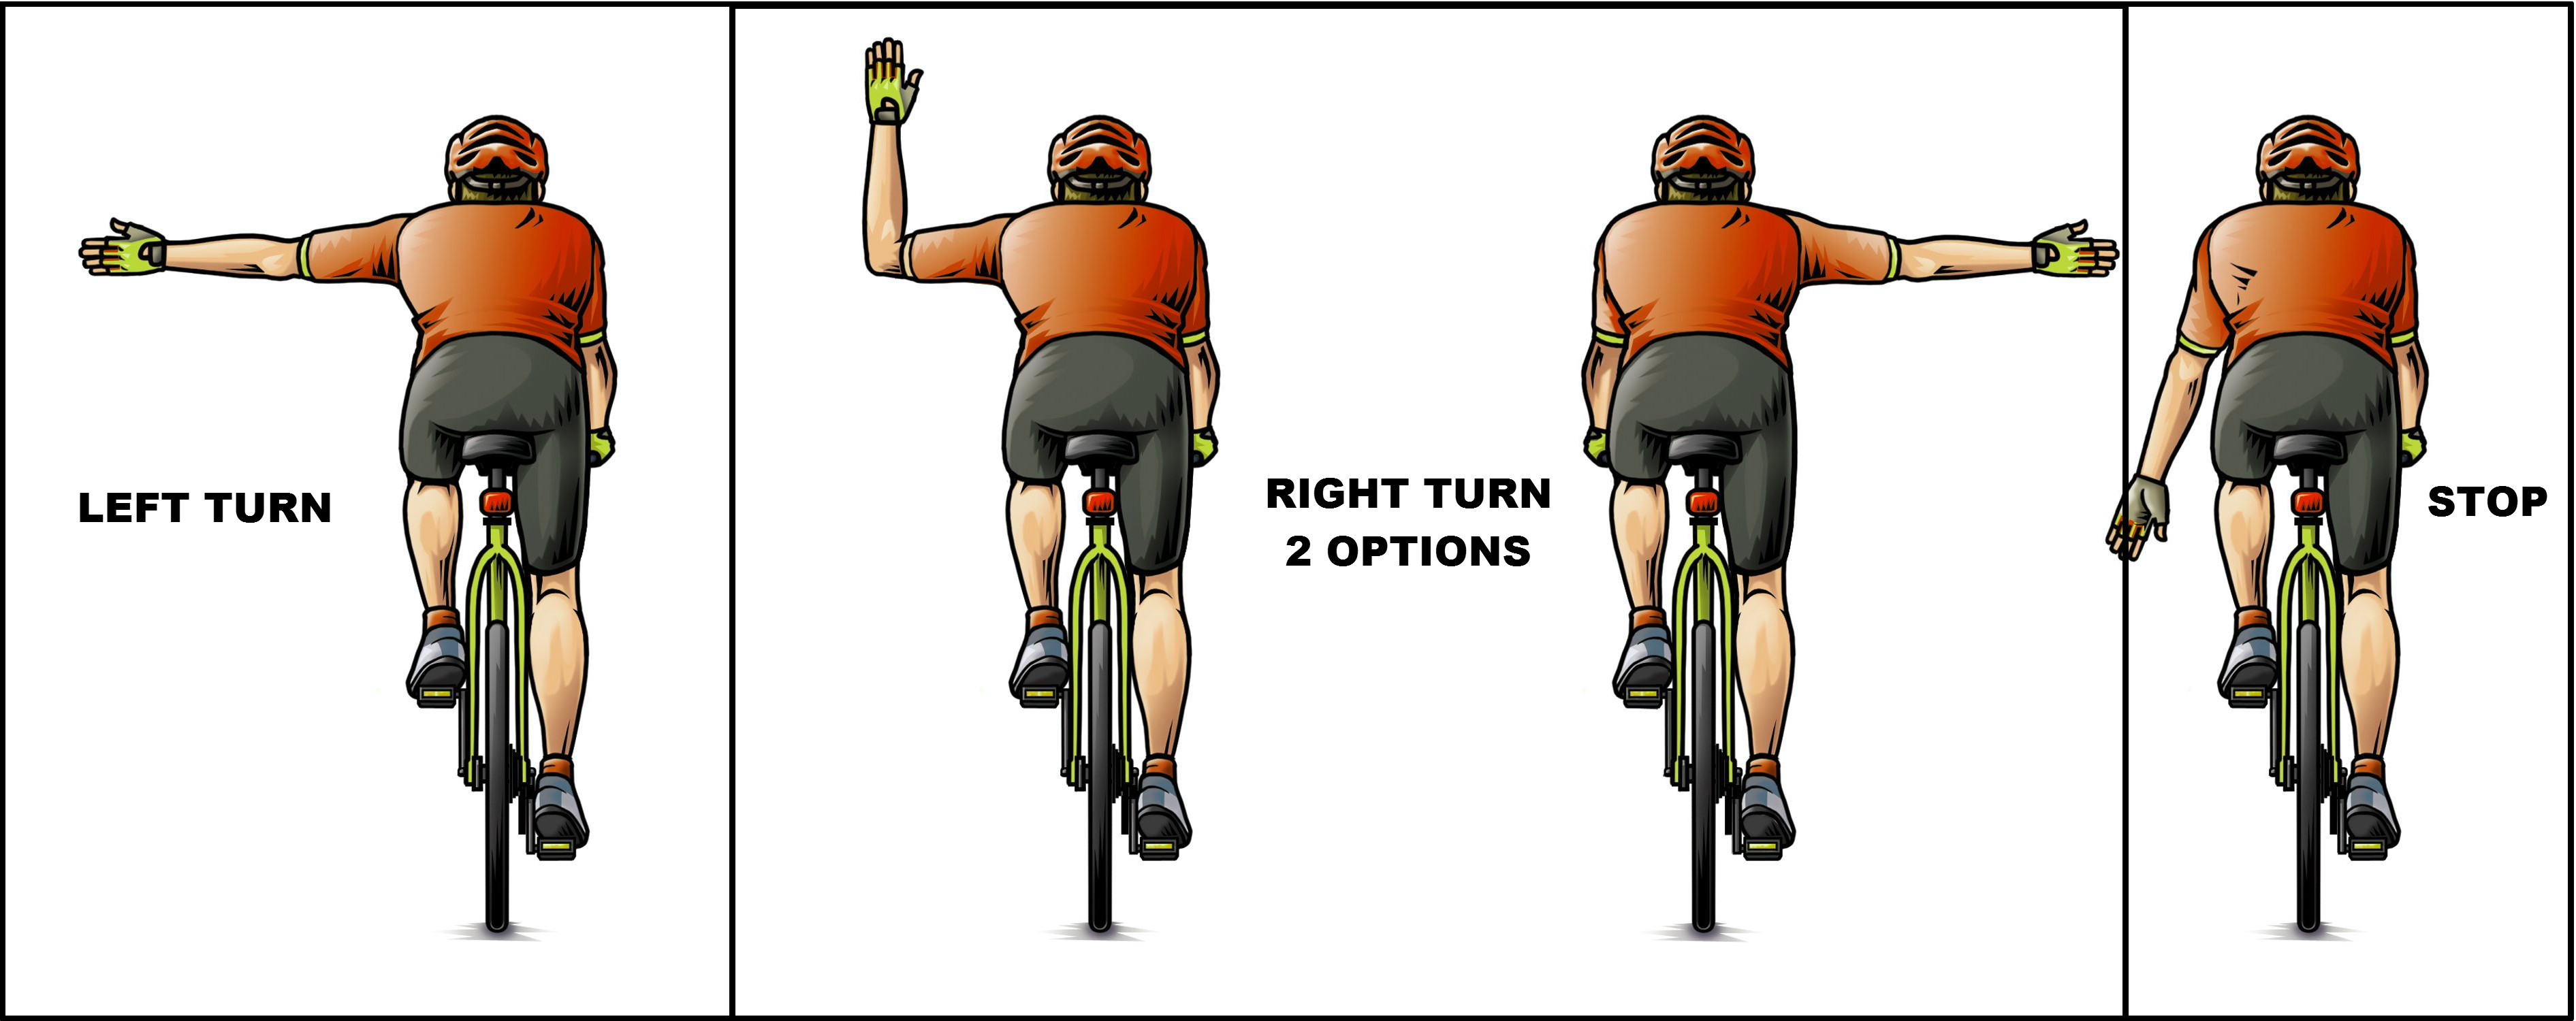 Bicycle-had-signals